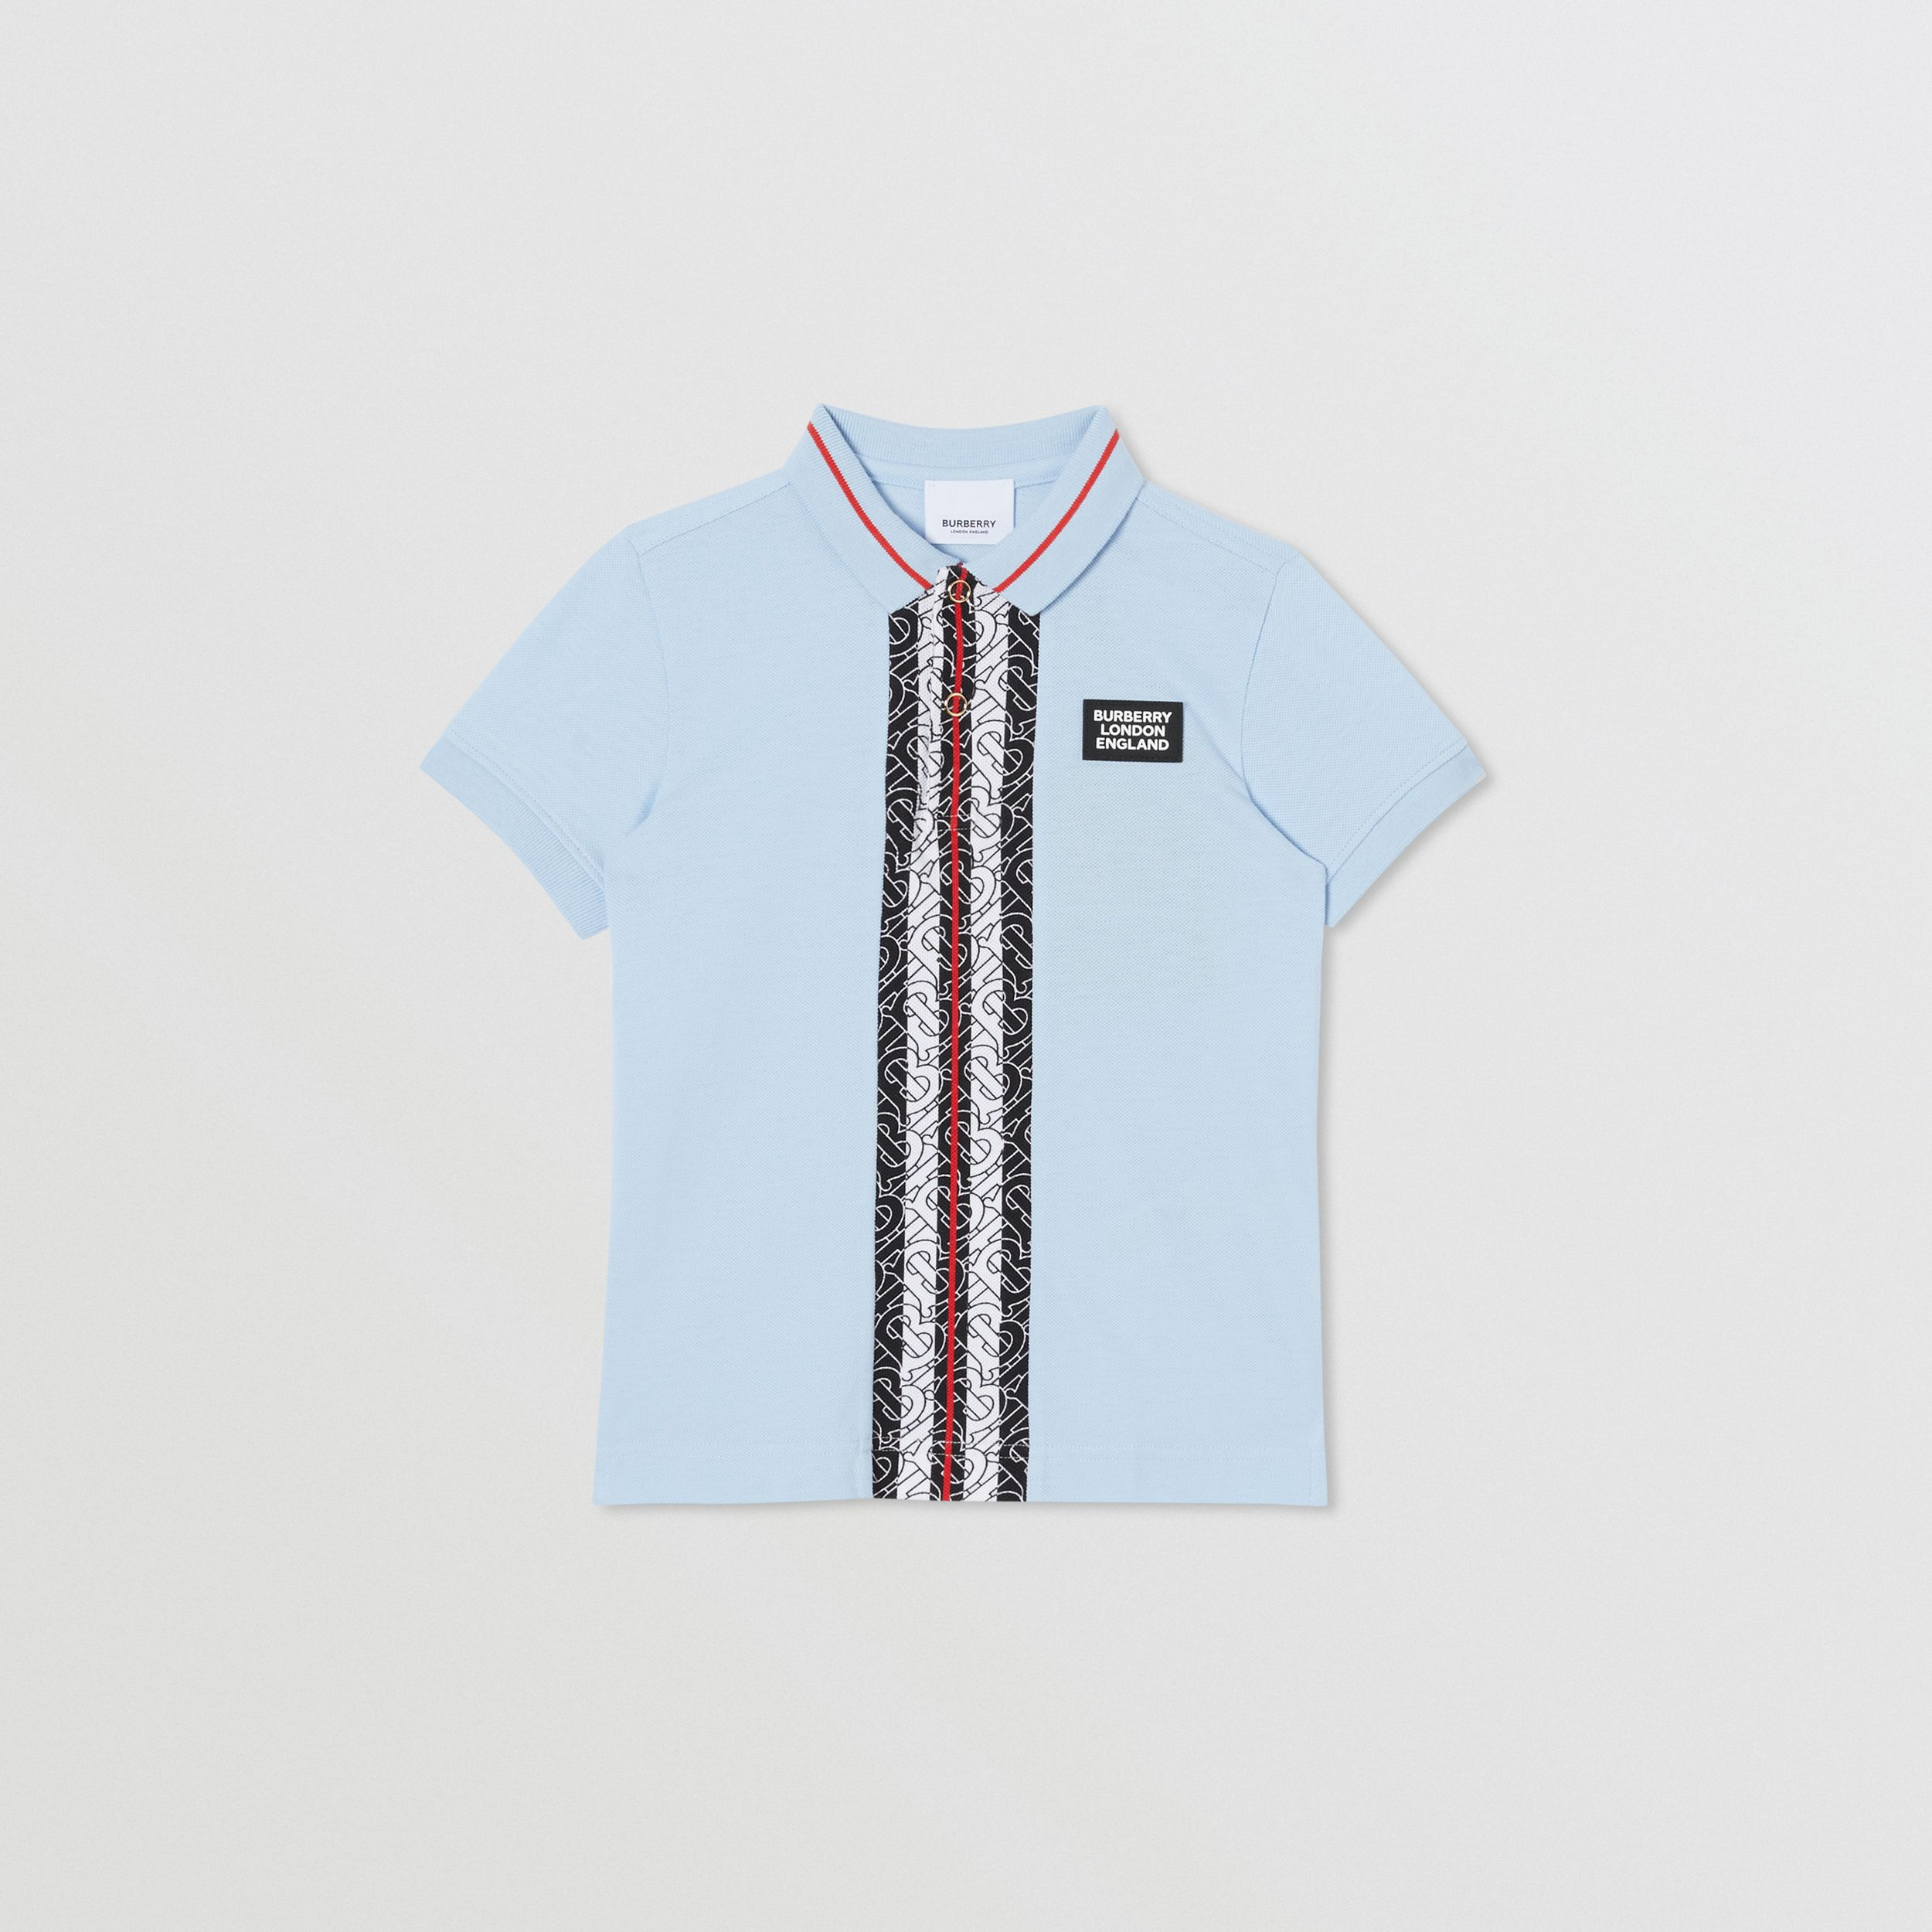 Monogram Stripe Print Cotton Piqué Polo Shirt in Pale Blue | Burberry - 1